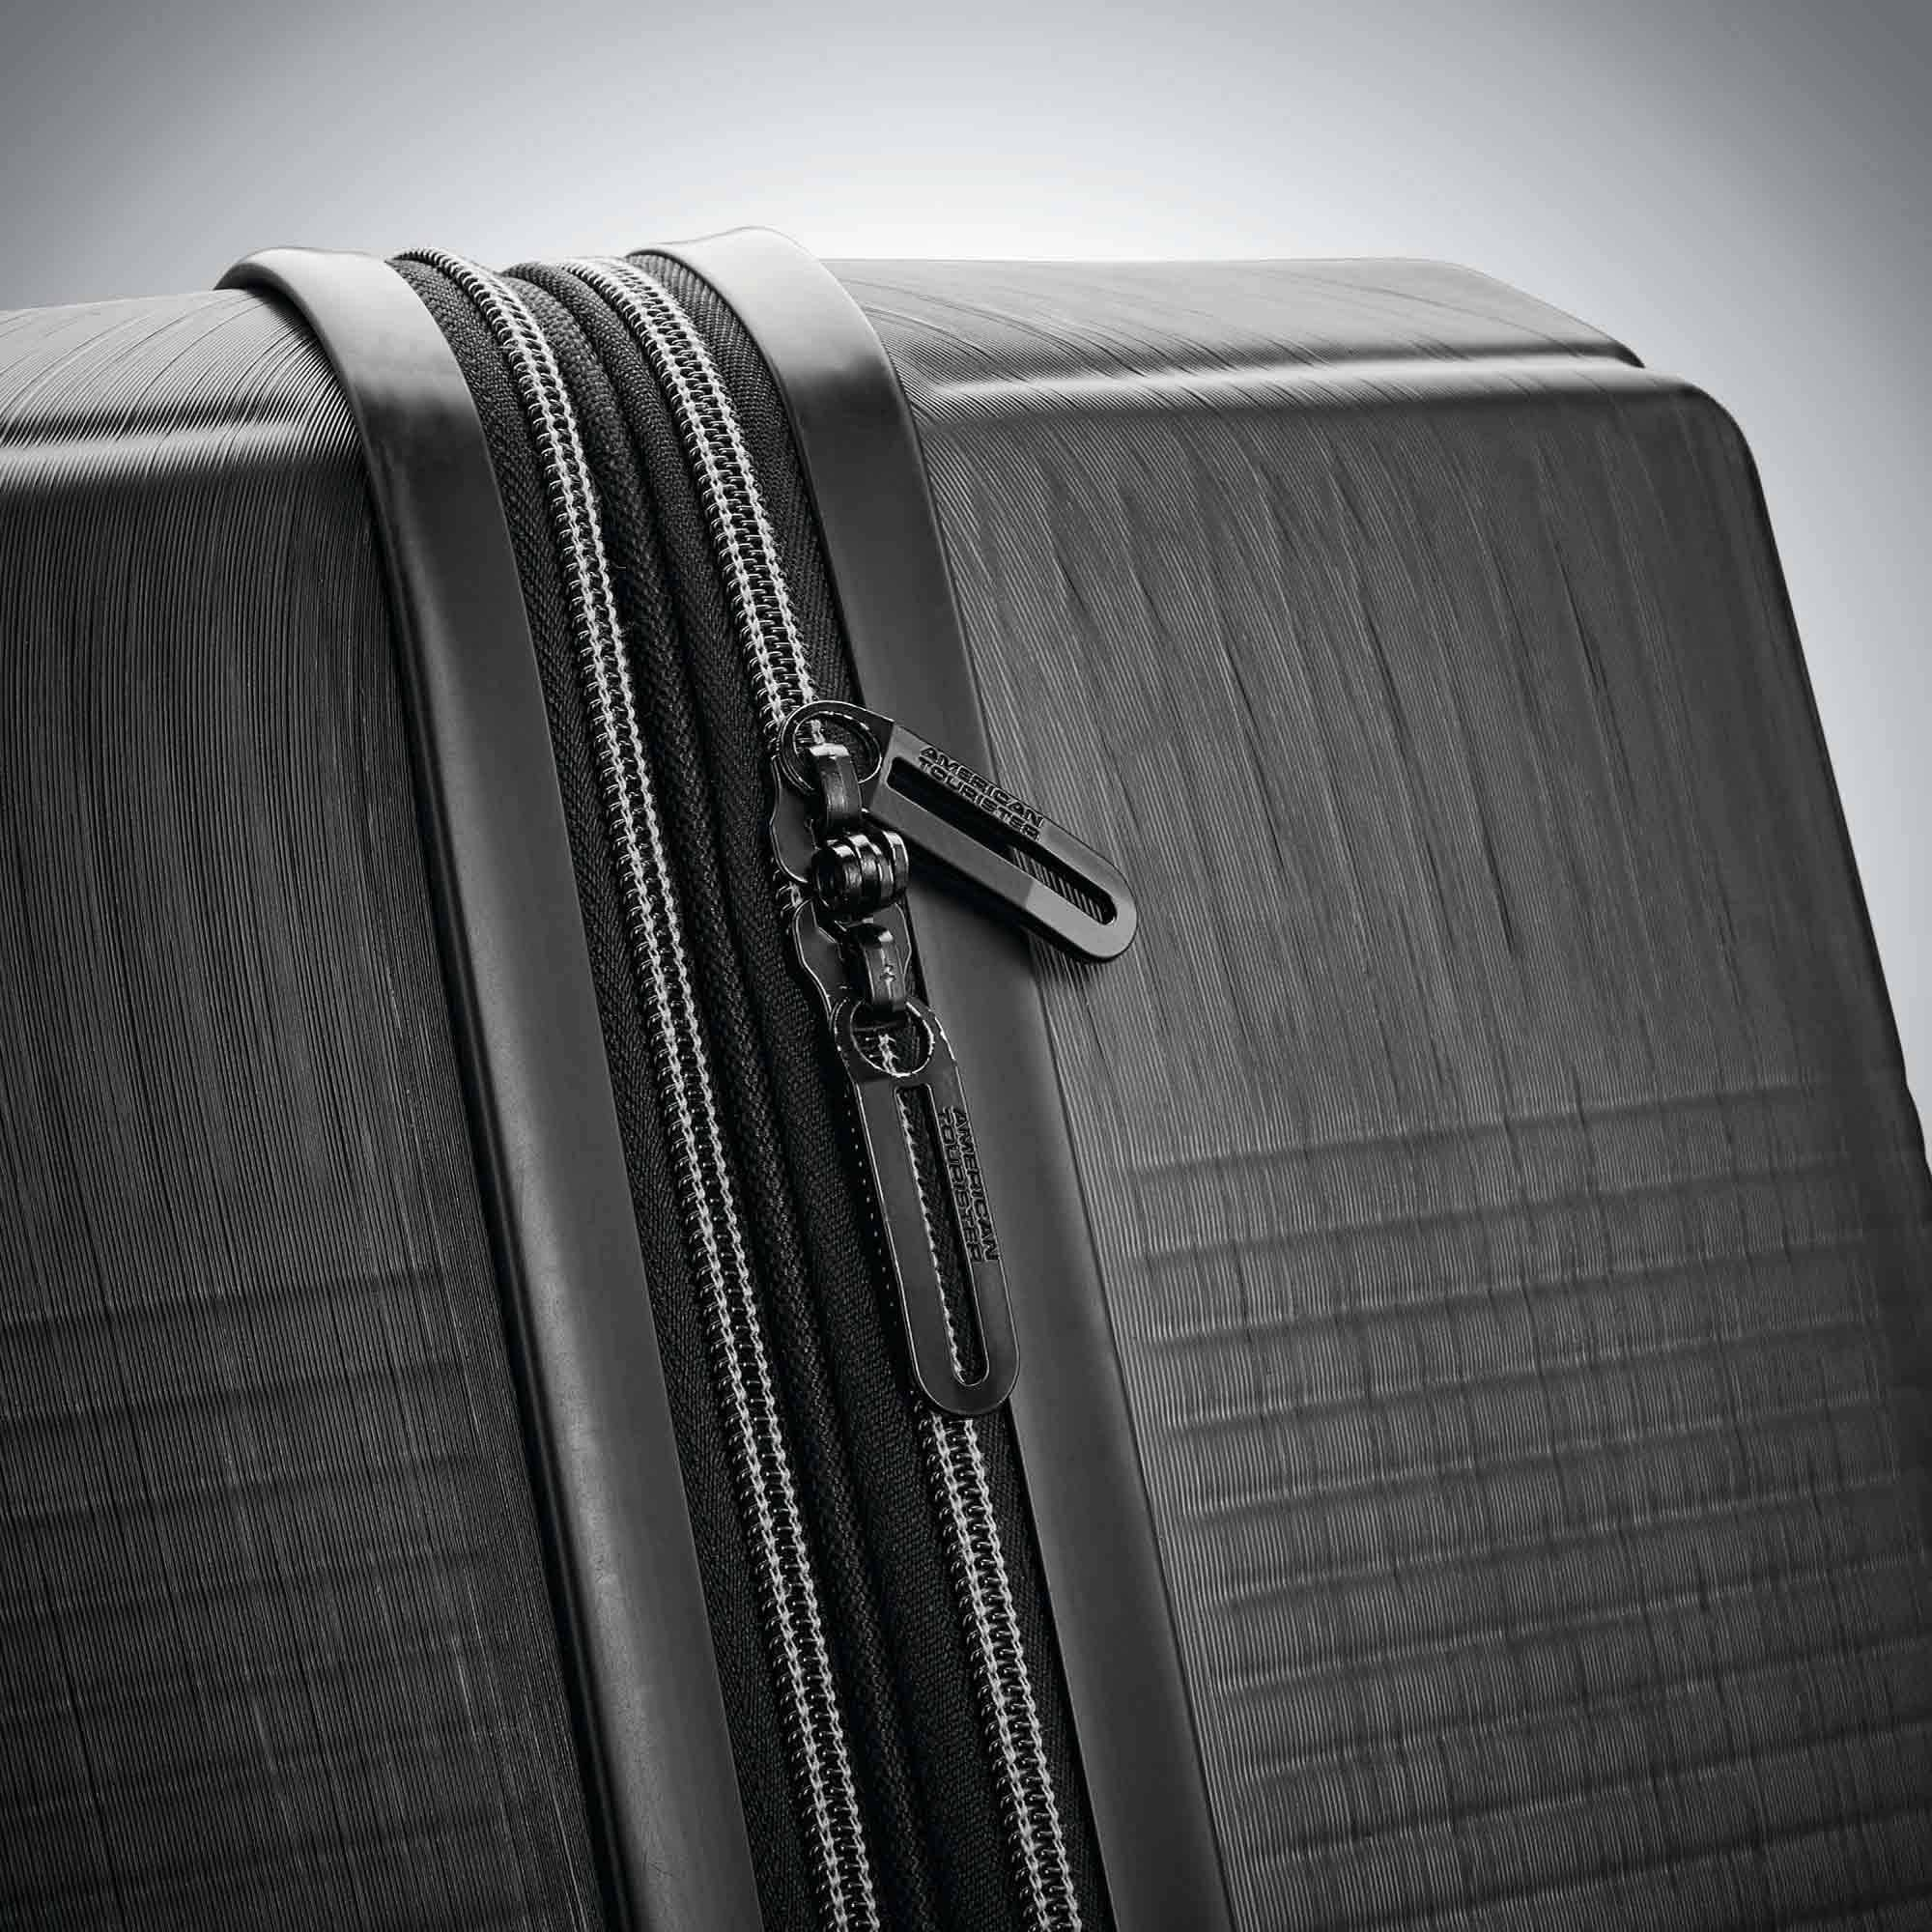 9746d8d1d7 ... American Tourister Stratum Xlt 20 Spinner Luggage View 5 ...